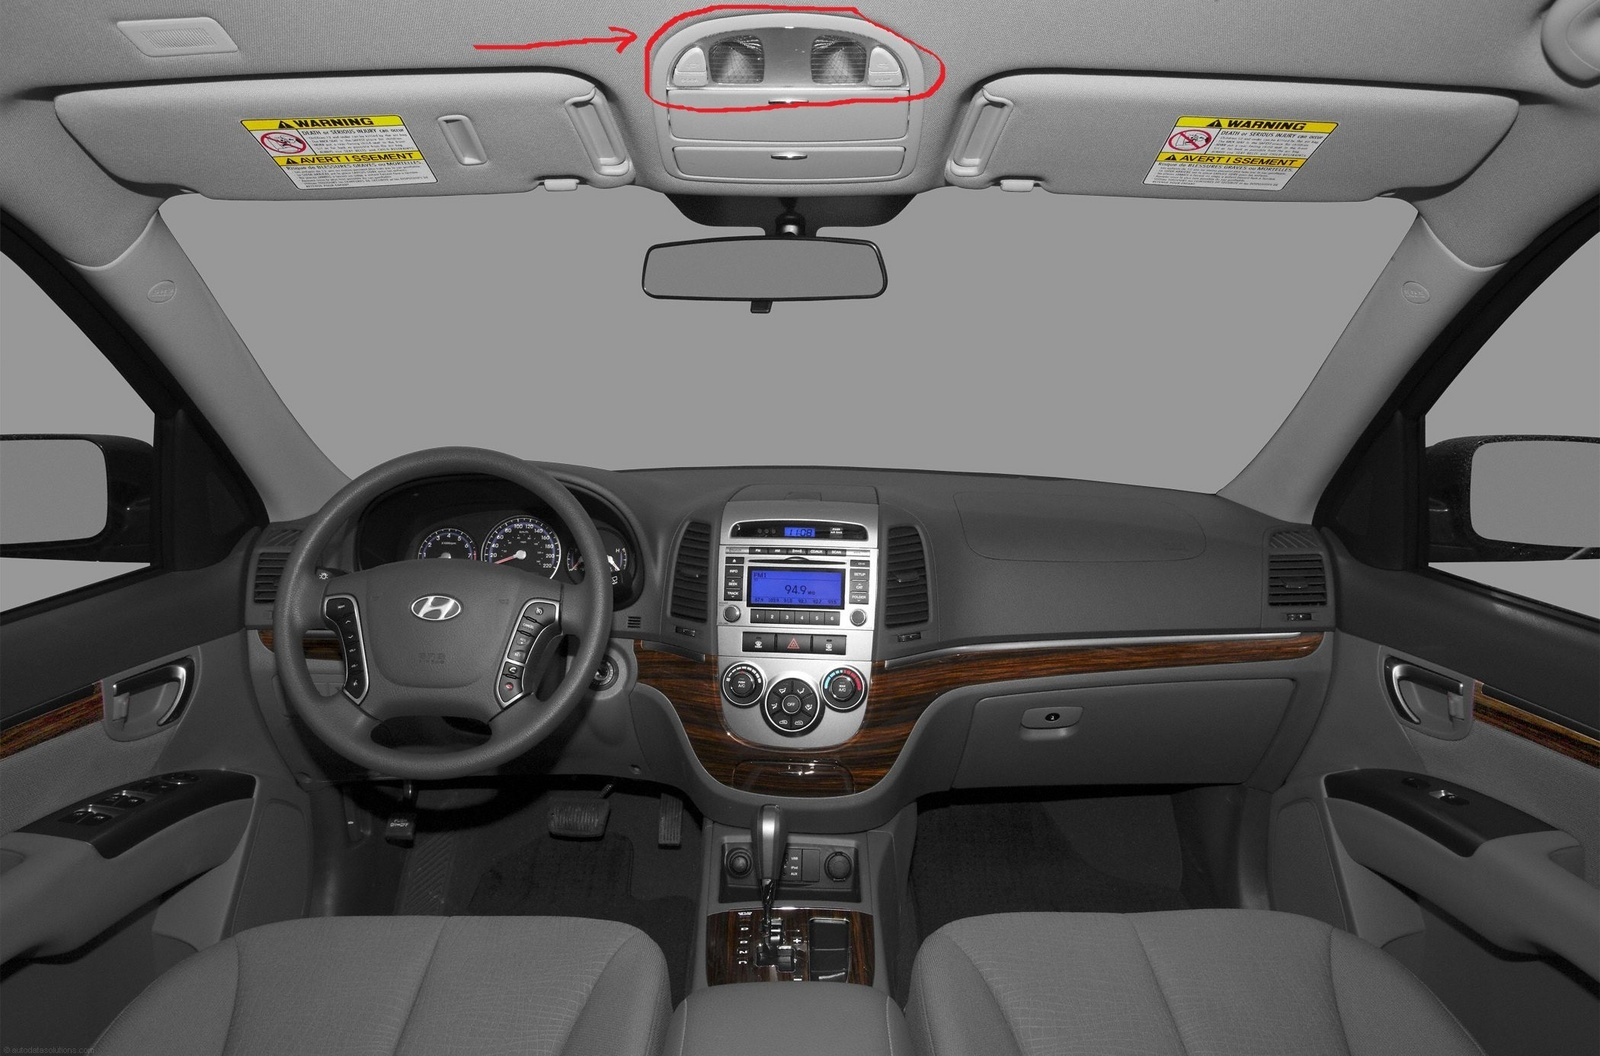 how do i turn on the interior lights to go on automatically for my hyundai  santa fe